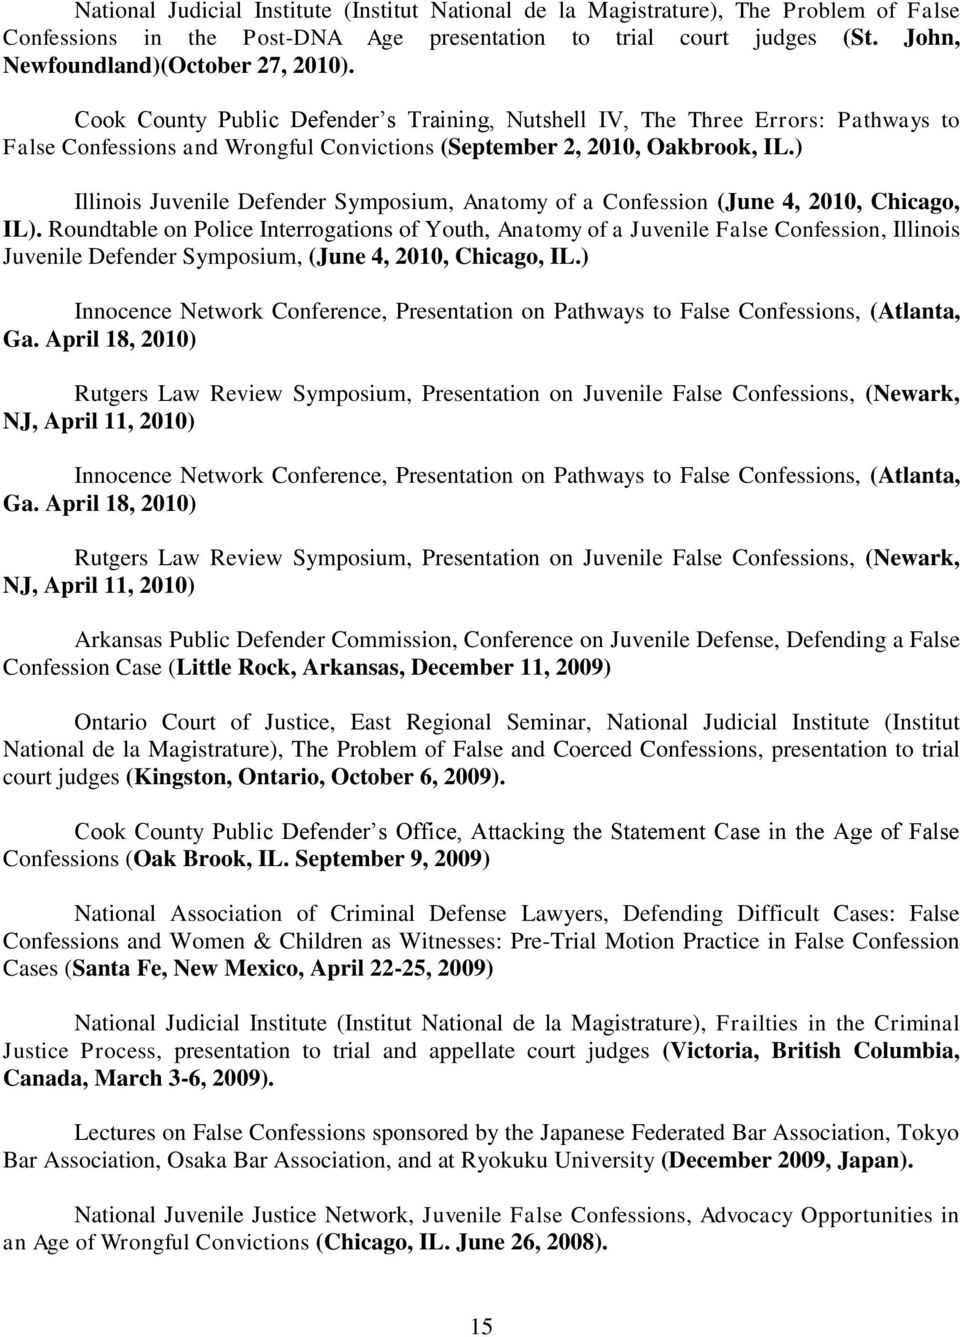 ) Illinois Juvenile Defender Symposium, Anatomy of a Confession (June 4, 2010, Chicago, IL).